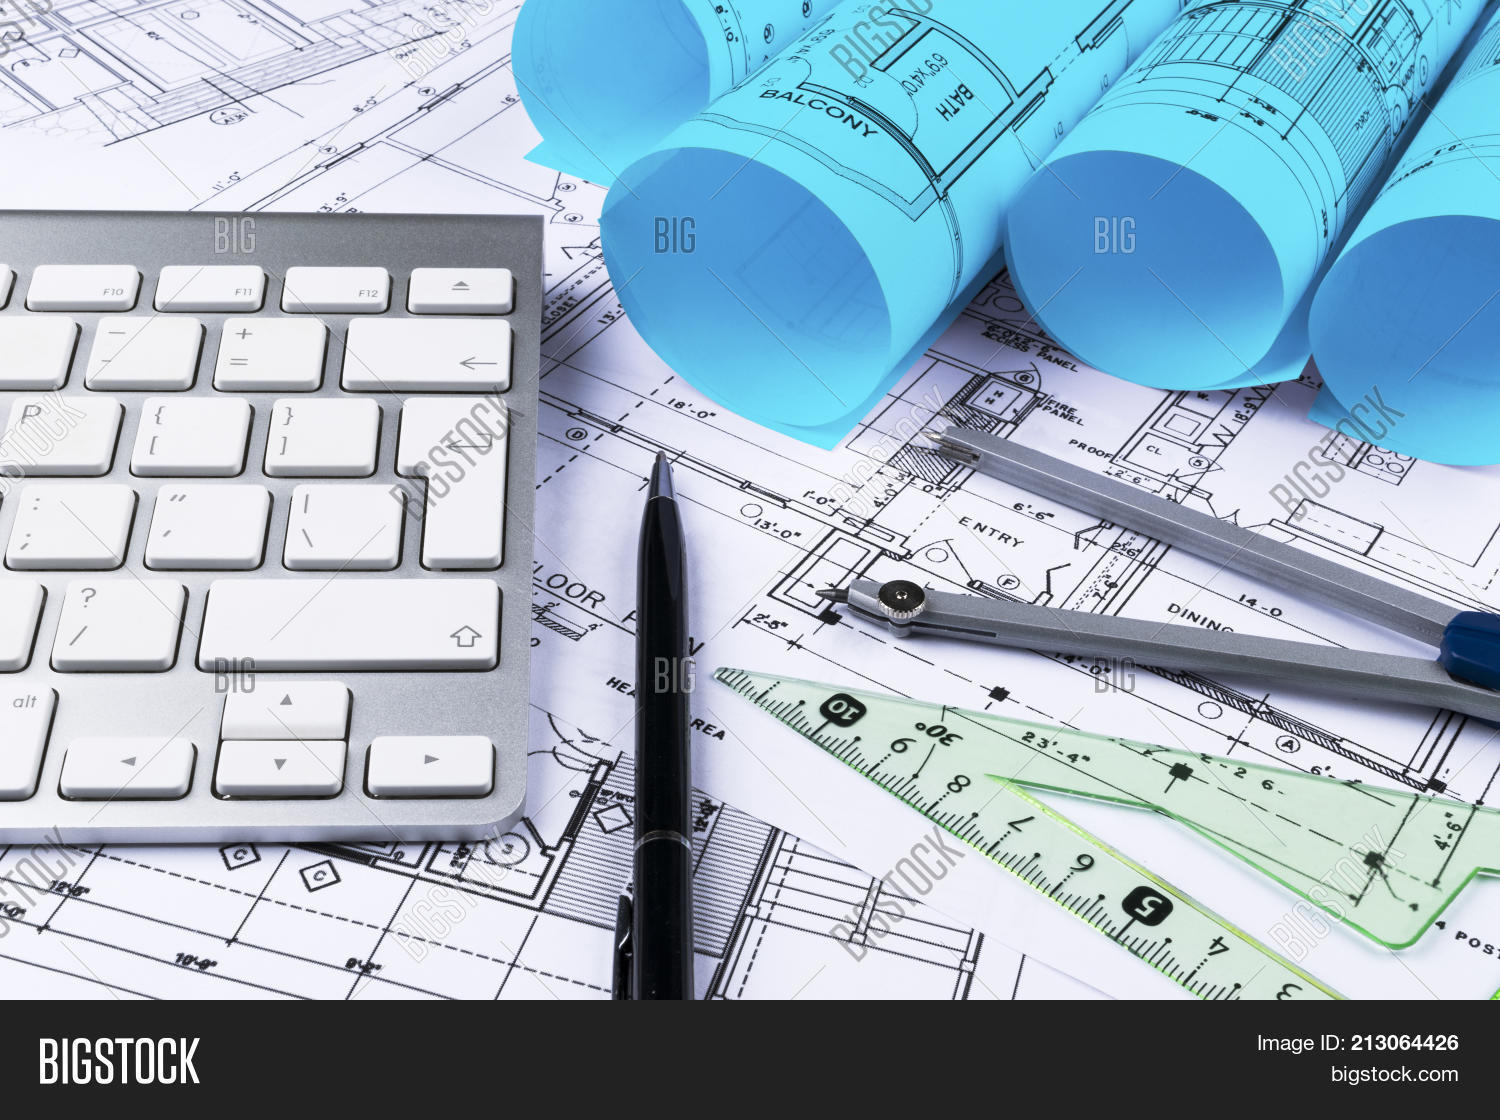 Architectural drawings image photo free trial bigstock architectural drawings of the modern house with computer keyboard architectural blueprints and blueprint rolls and malvernweather Images